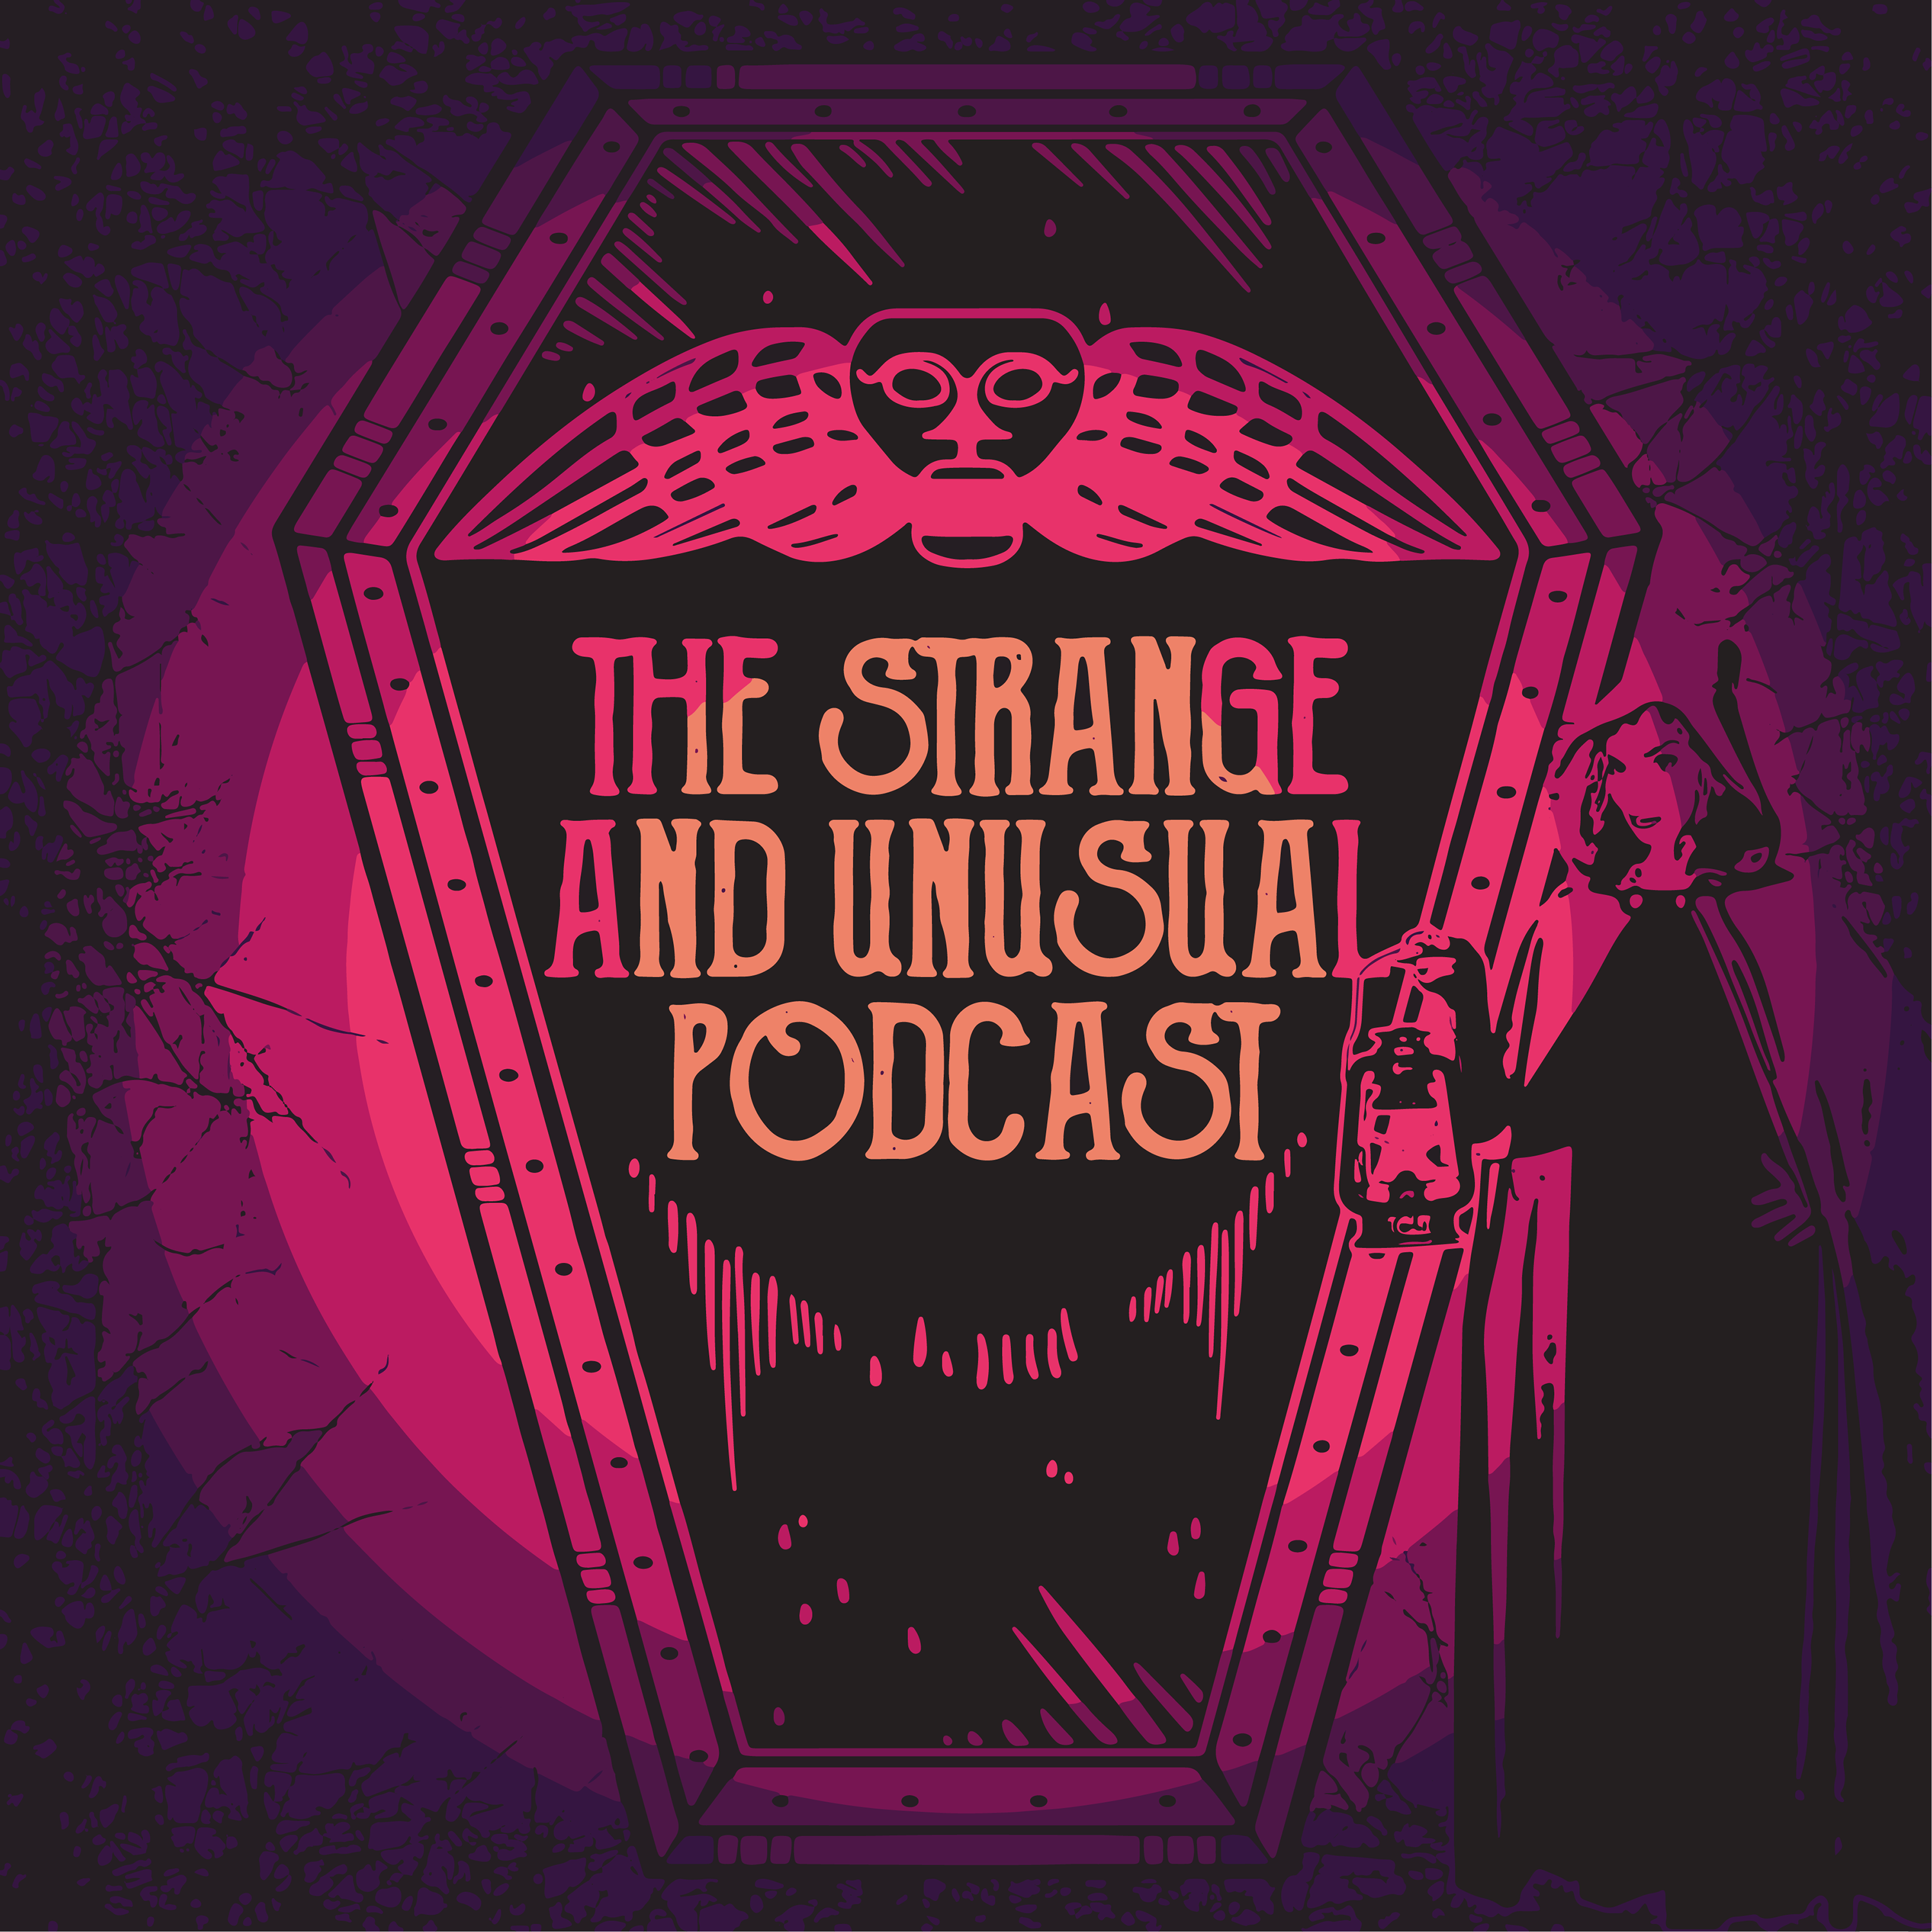 Podcast — The Strange and Unusual Podcast